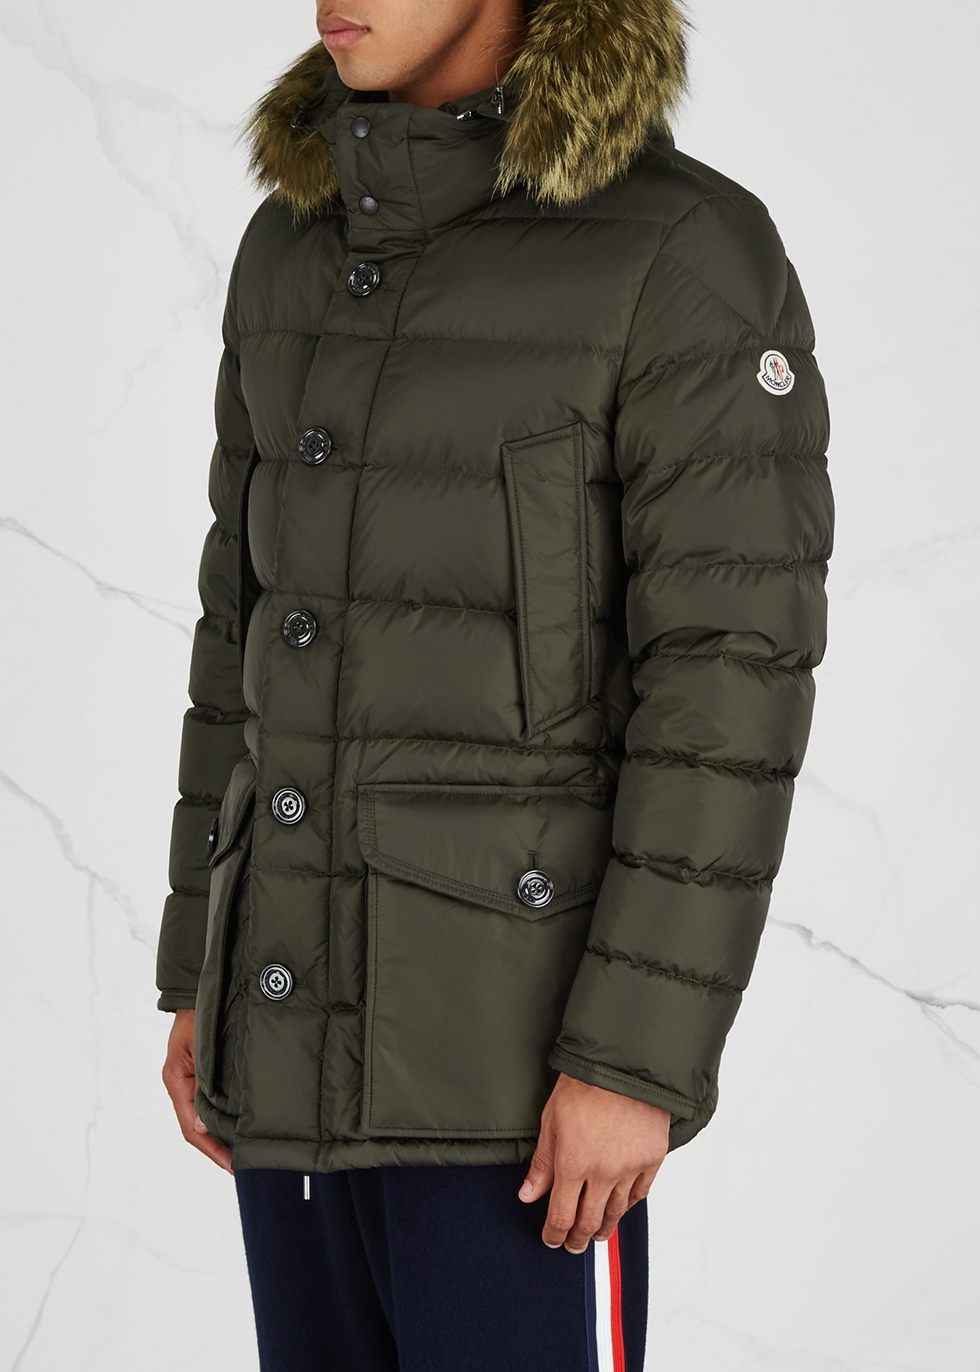 Cluny fur-trimmed shell jacket - Moncler